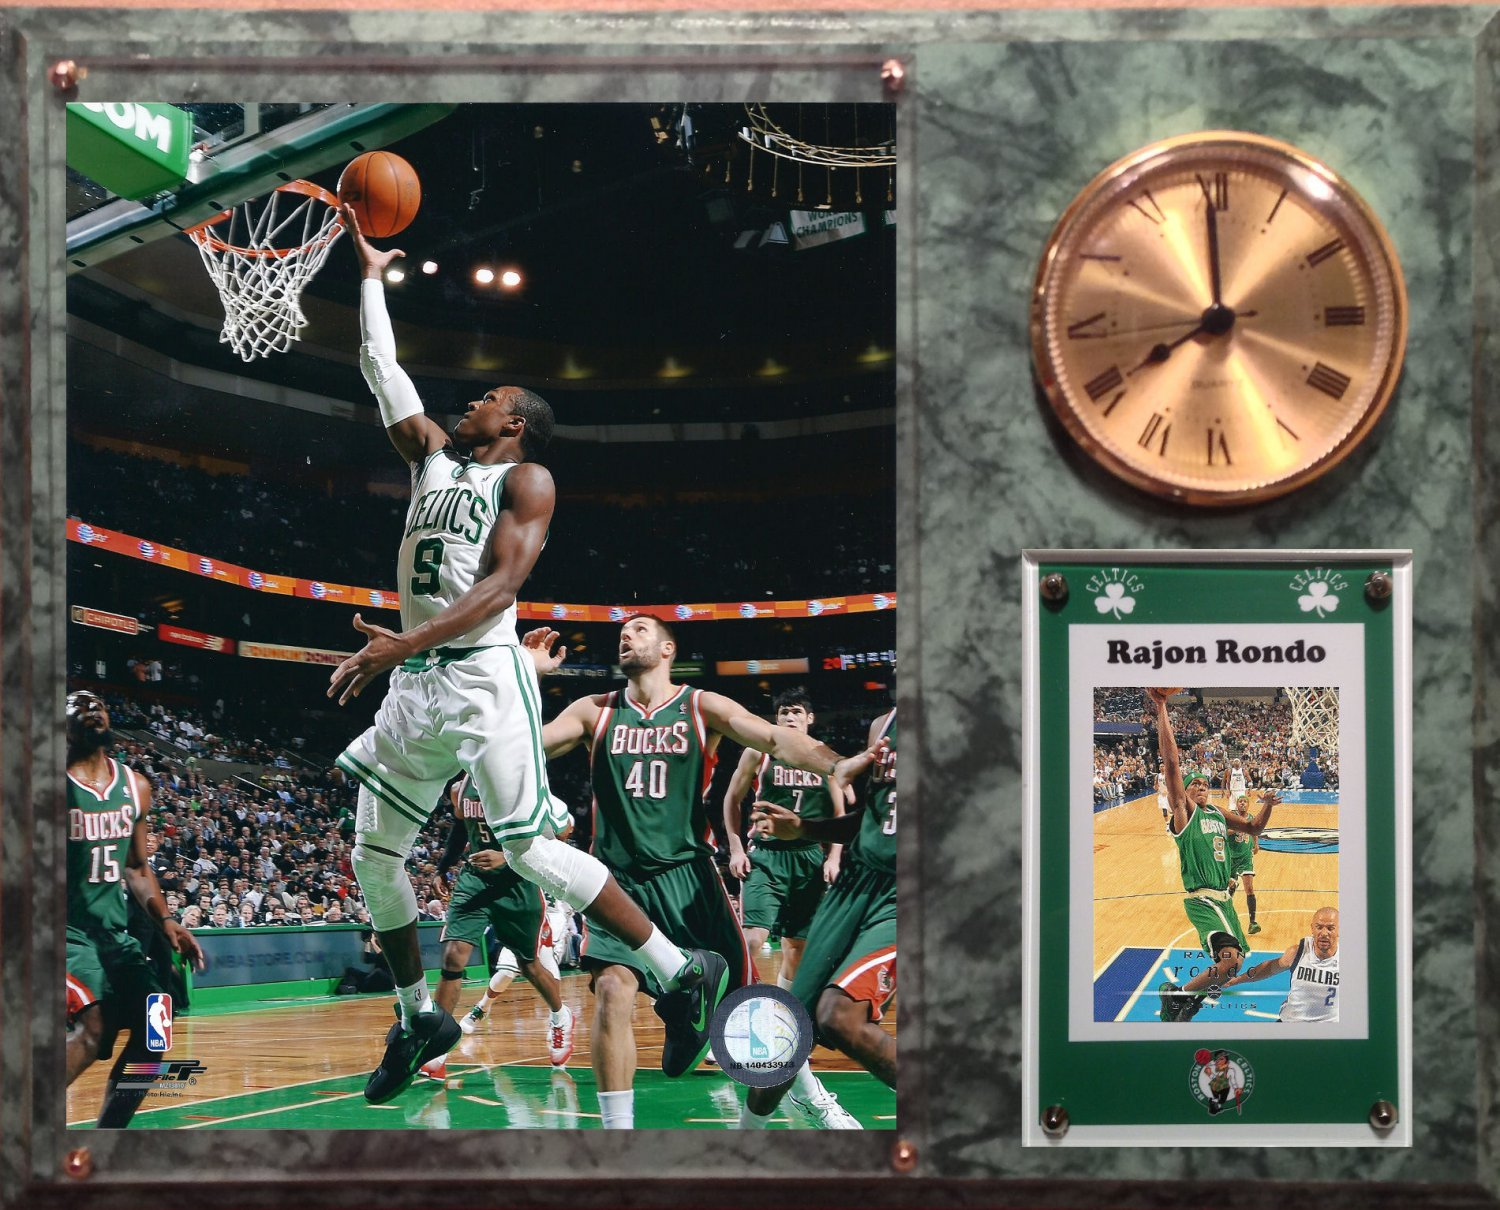 Rajon Rondo Boston Celtics Photo Plaque clock.